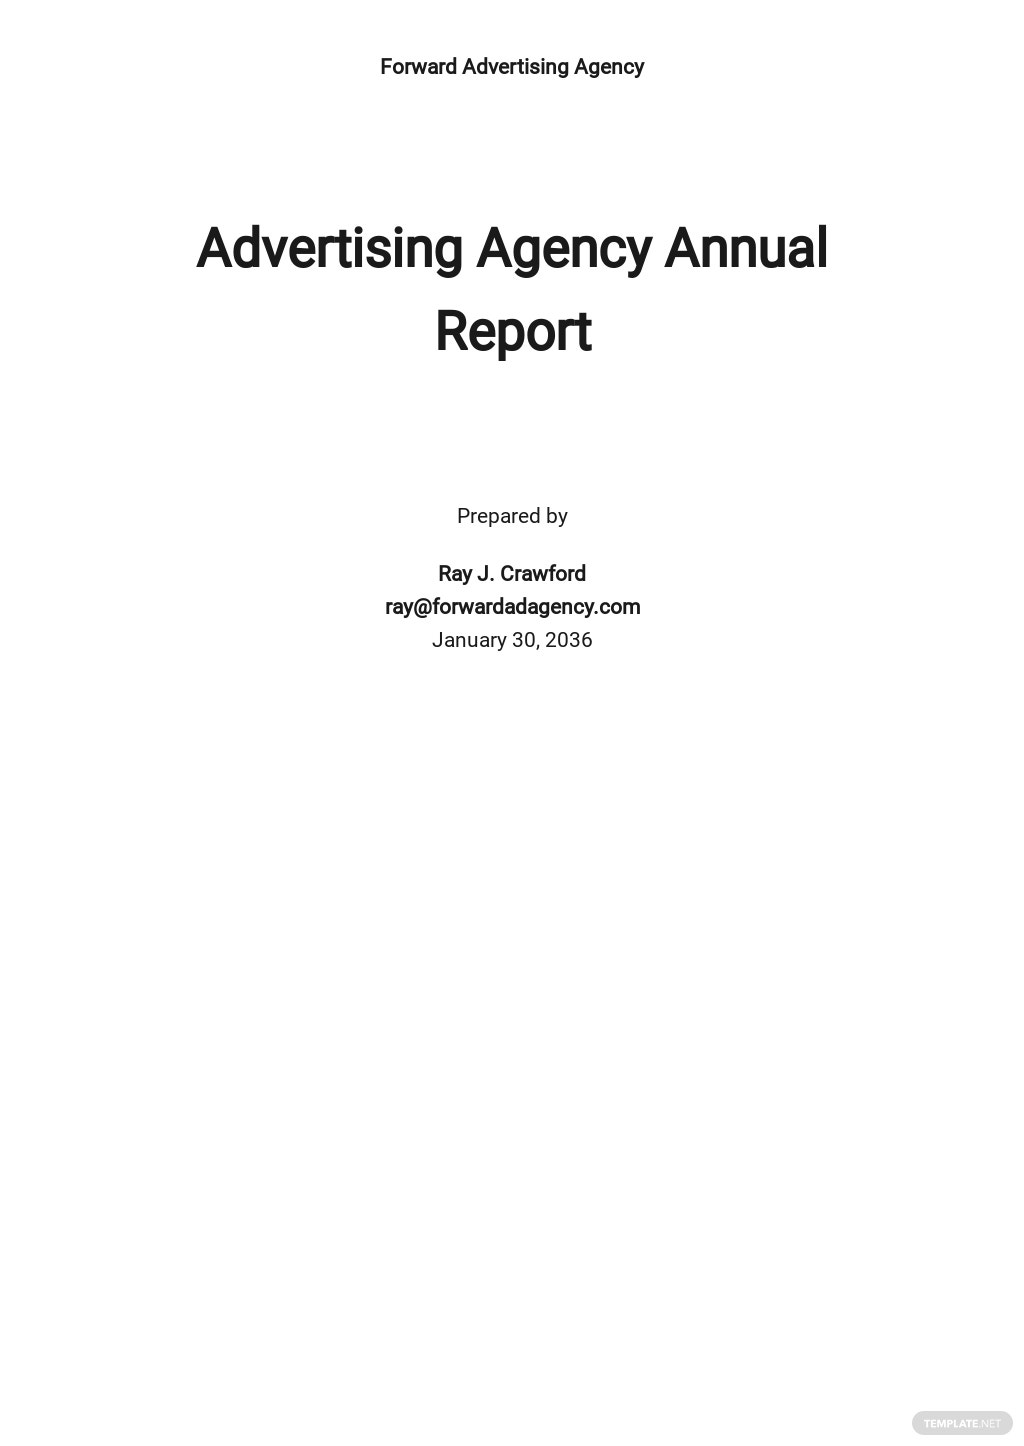 Advertising Agency Annual Report Template.jpe